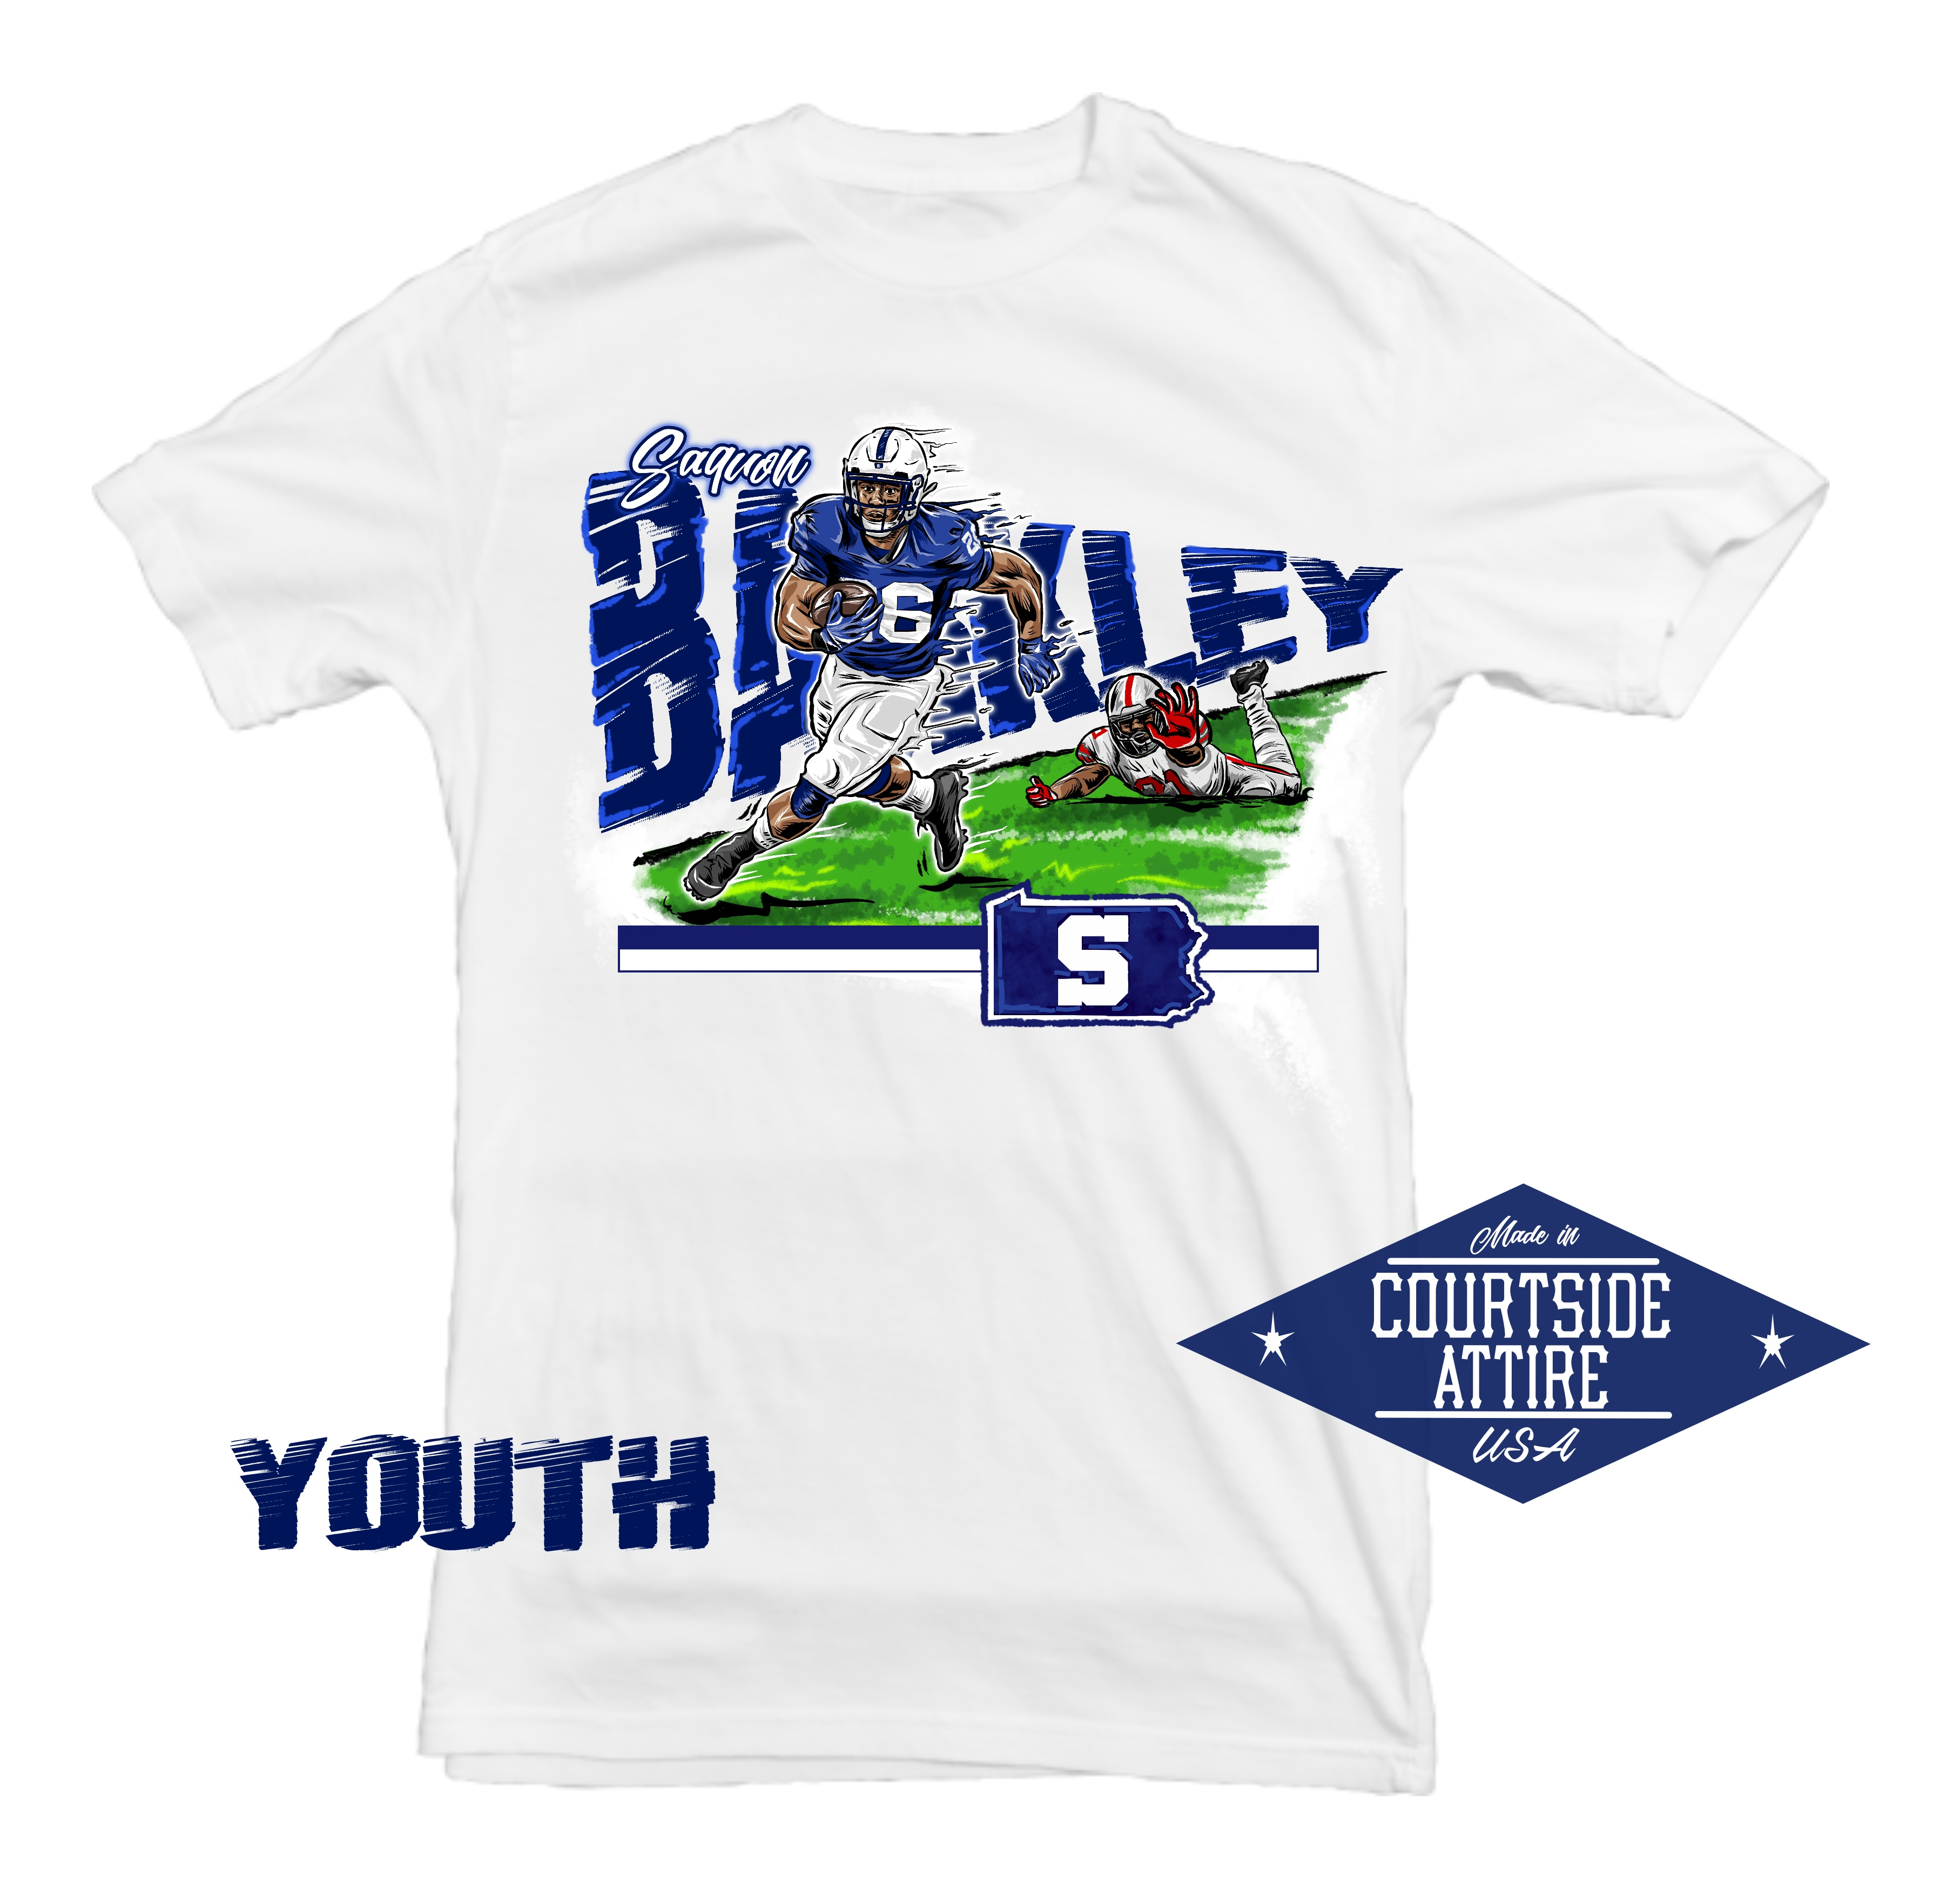 brand new 0d68c f1f9c Kids Saquon Barkley Penn State Shirt Youth sold by Courtside Attire